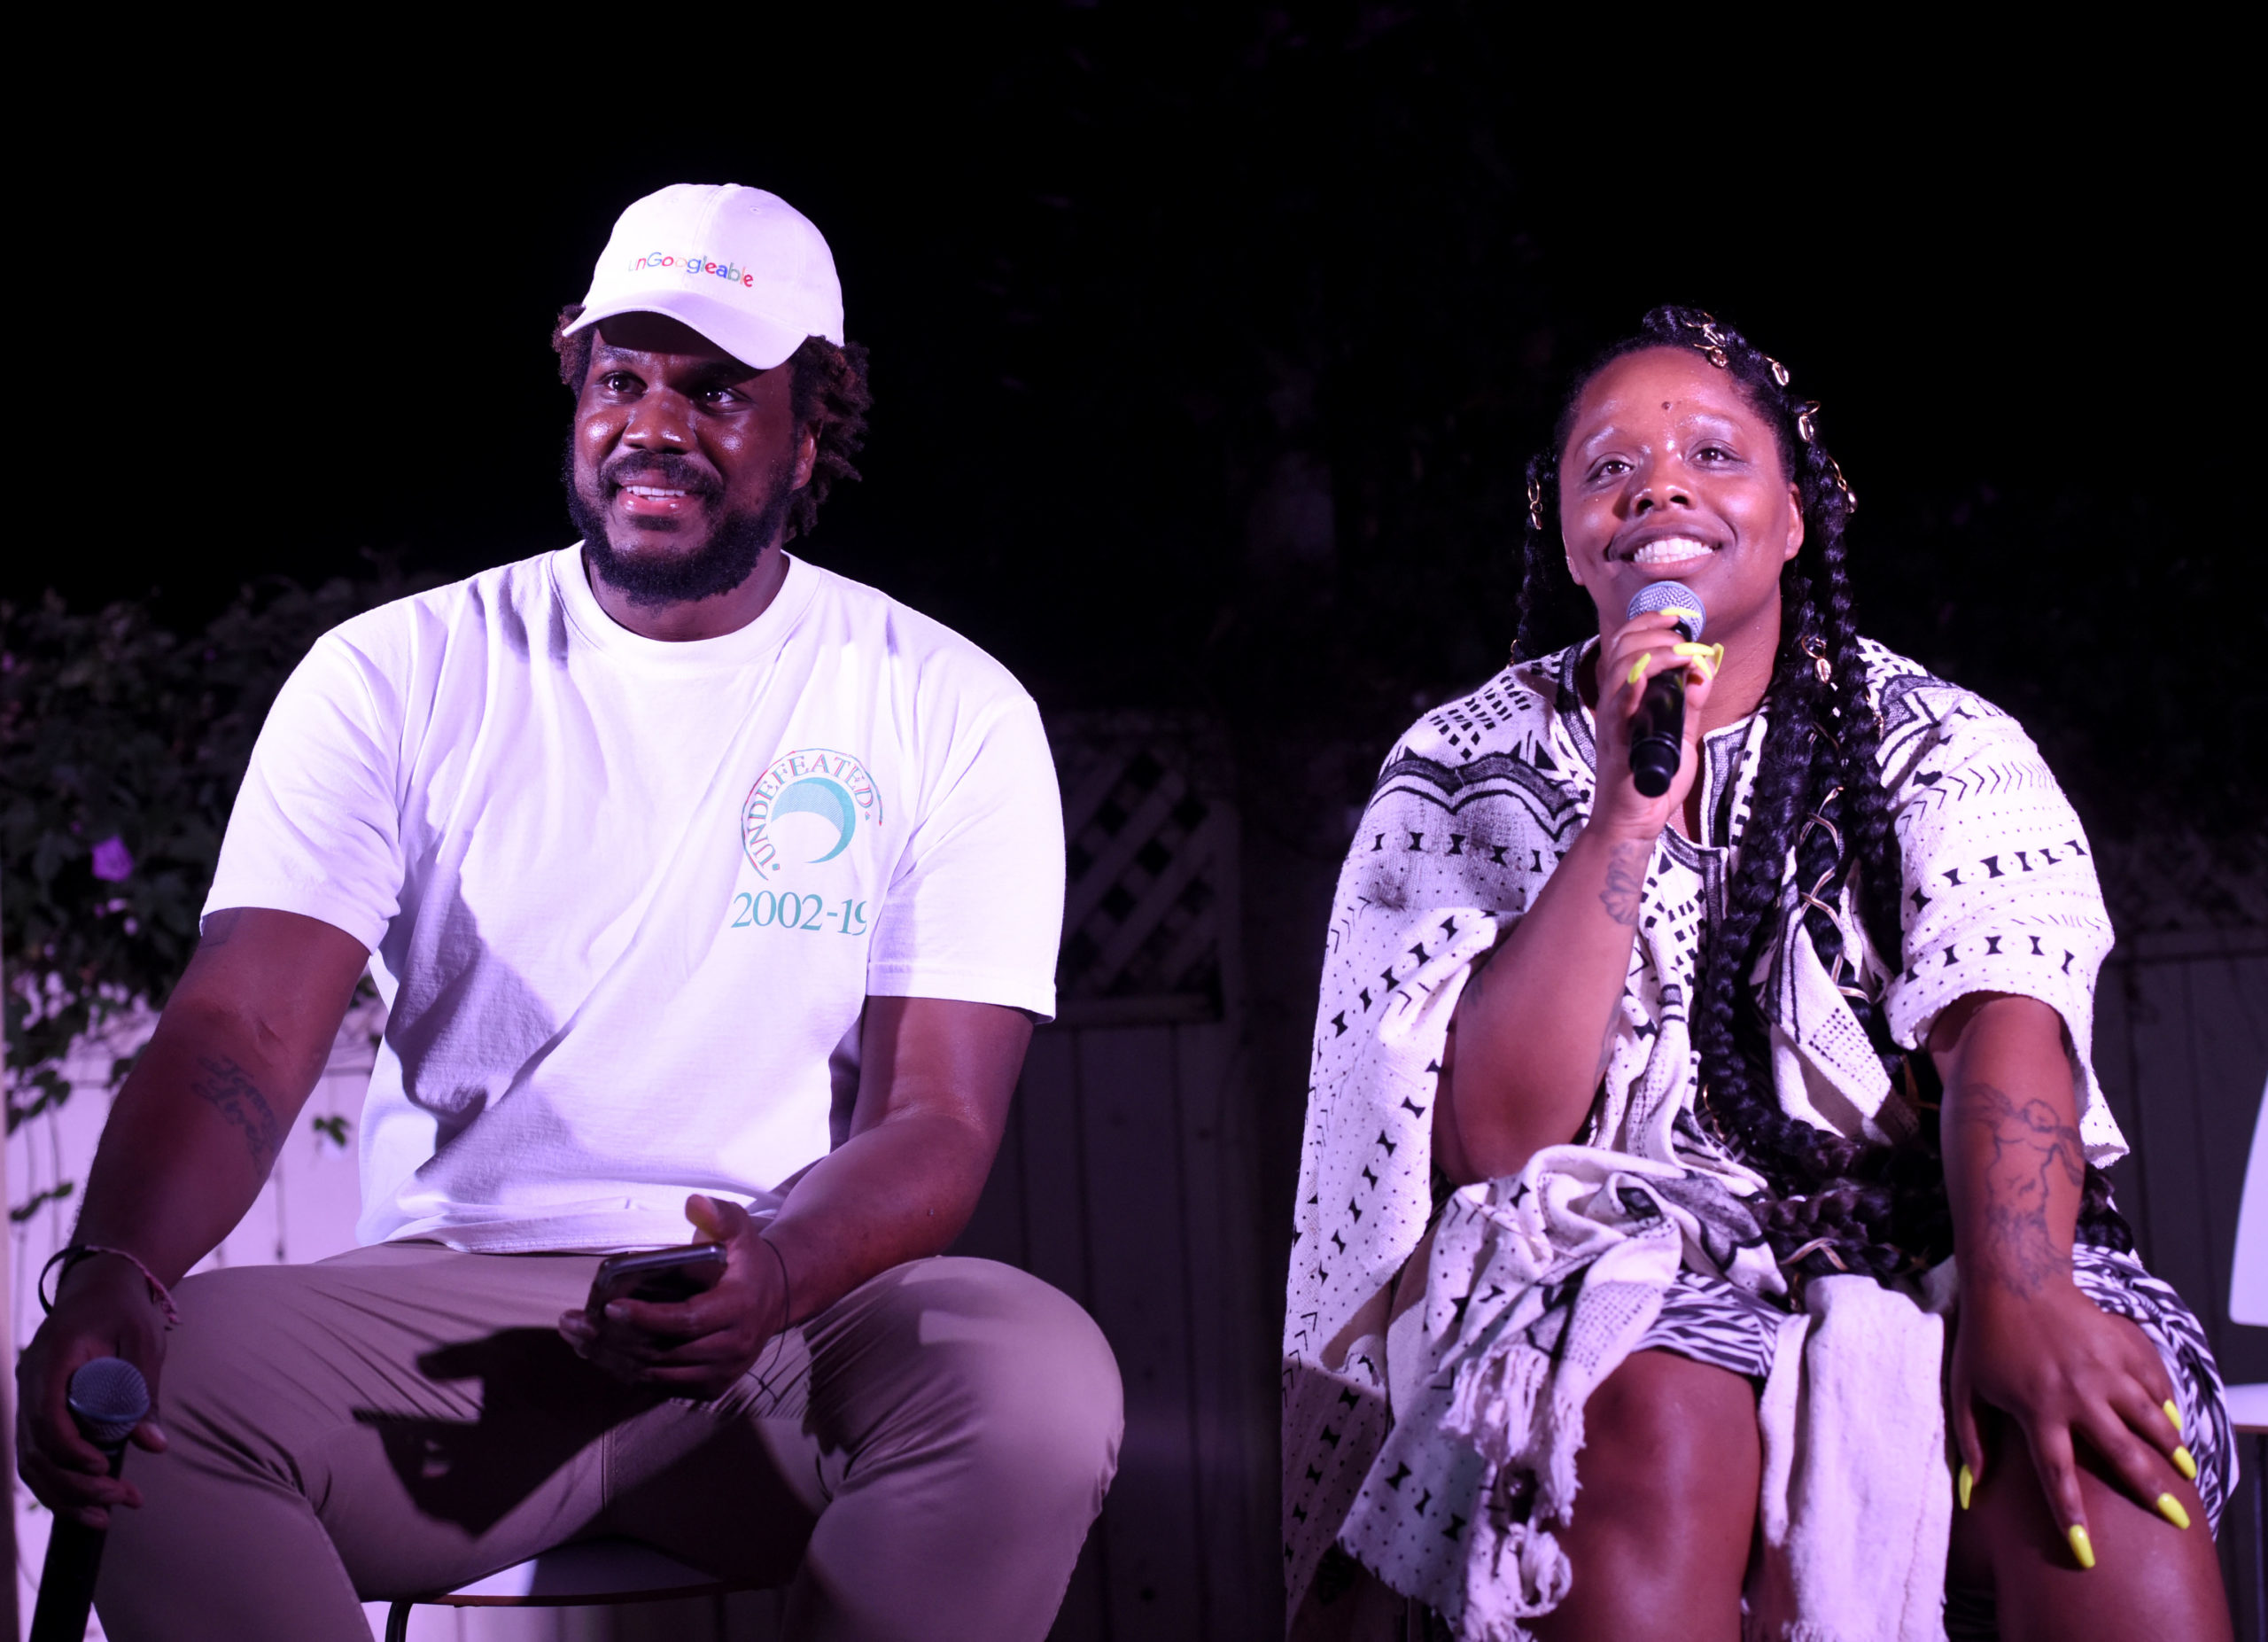 Damon Turner and Patrisse Cullors speak at Patrisse Cullors' Thesis Solo Show on April 18, 2019, in Los Angeles, California. (Vivien Killilea/Getty Images for Patrisse Cullors)